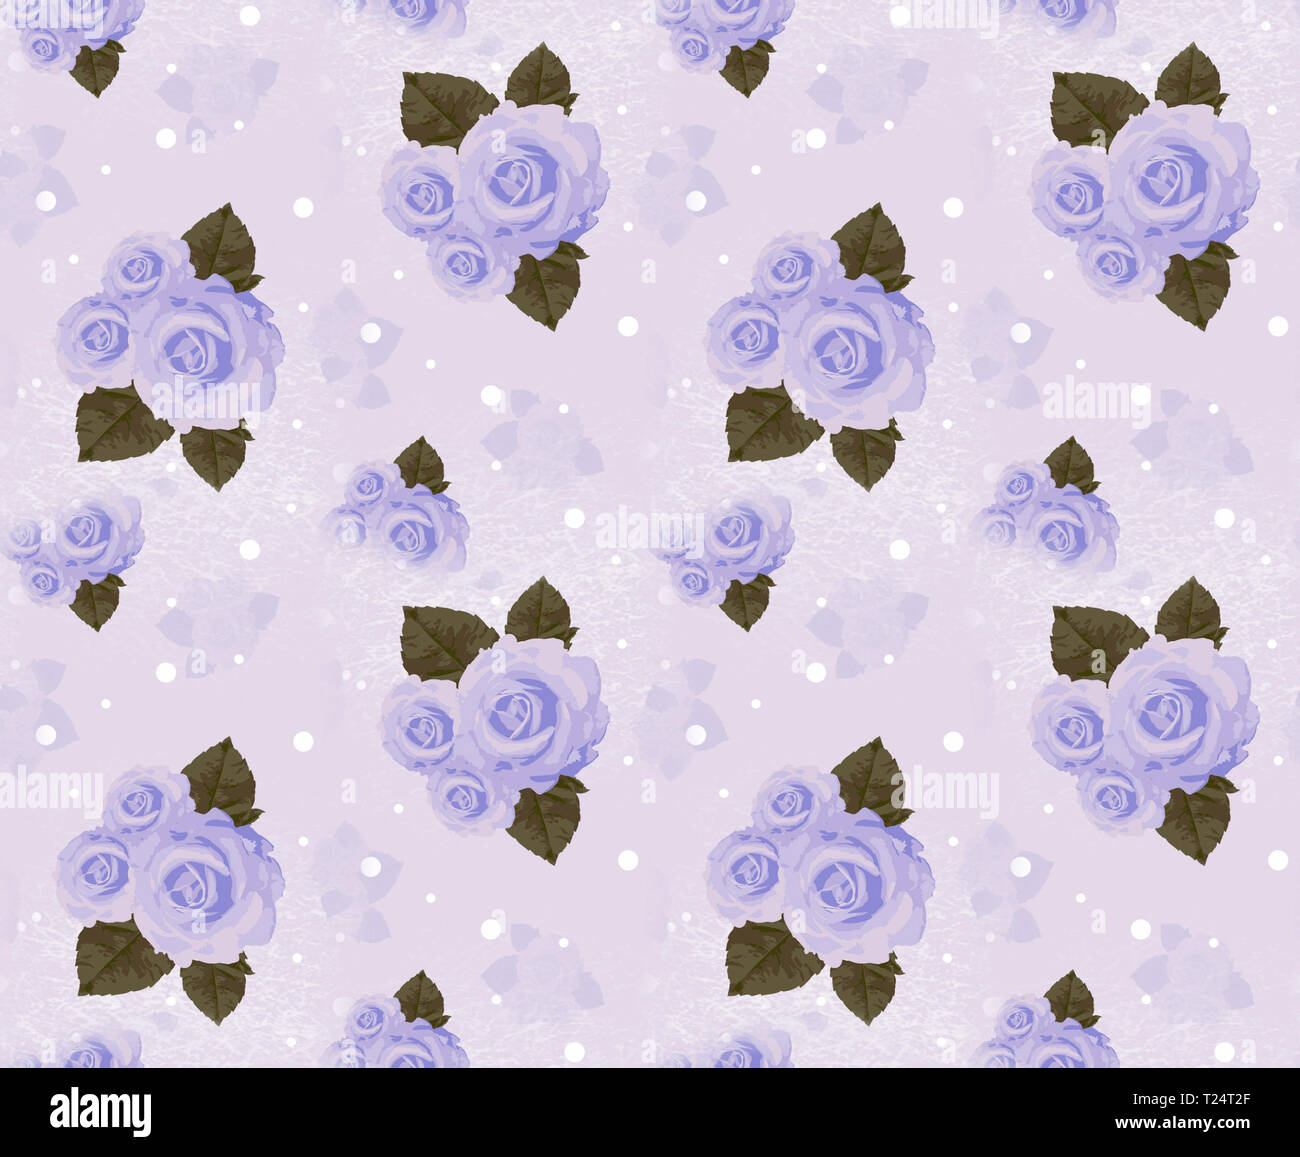 Seamless wall-paper with roses, lavender. A vintage decorative pattern, a print for fabric, interior design, wedding invitation, a background. A basis - Stock Image